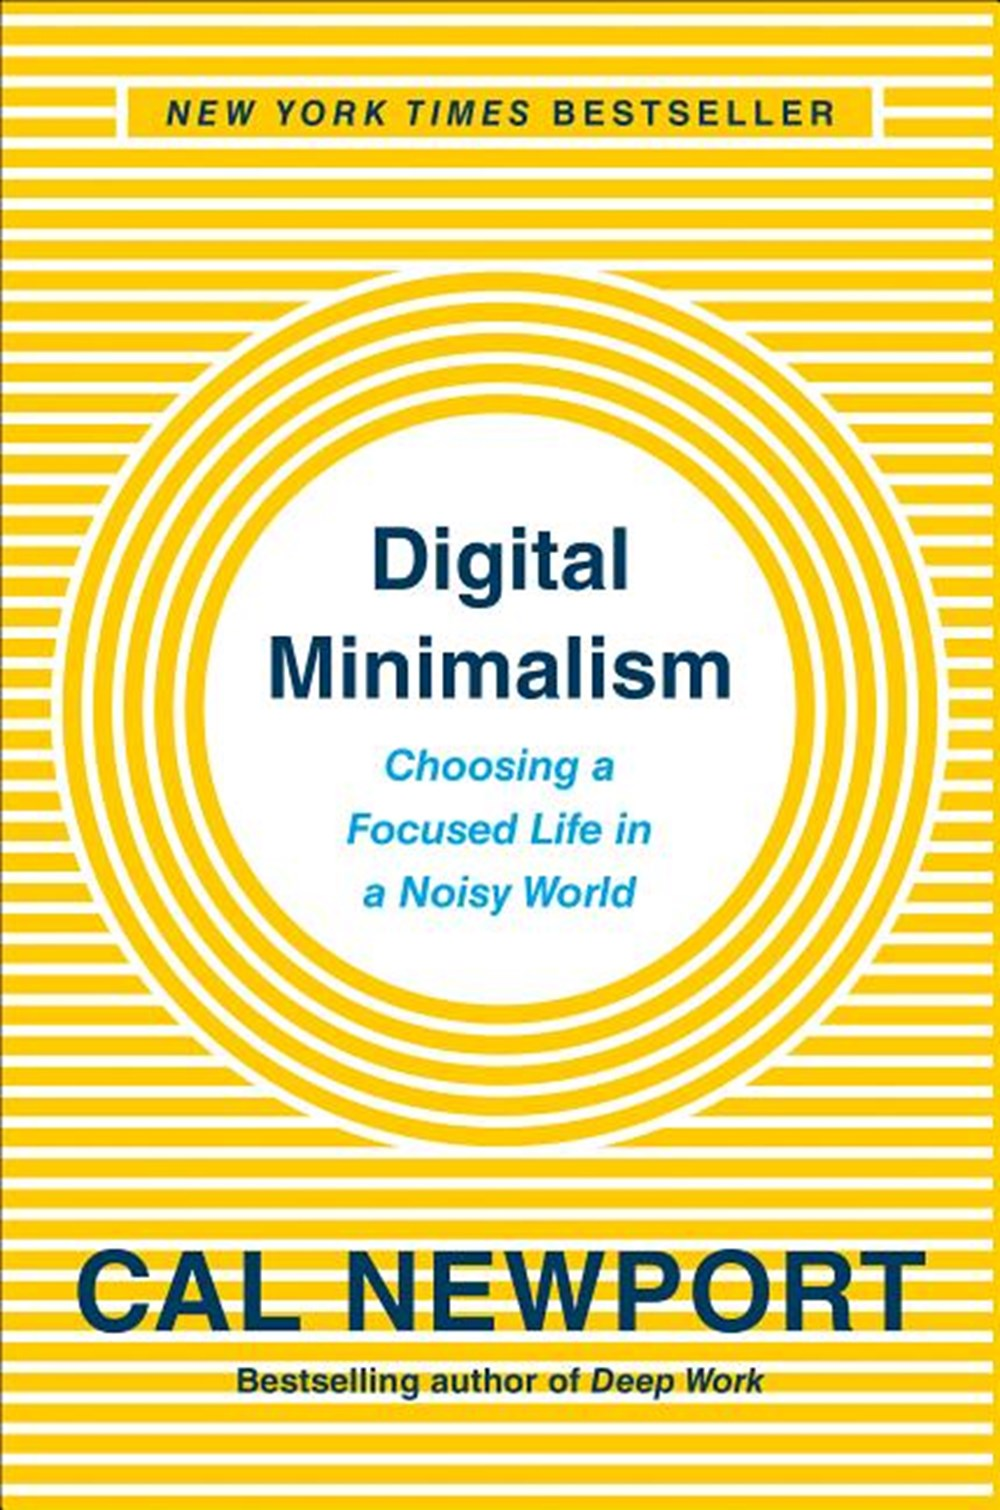 Digital Minimalism Choosing a Focused Life in a Noisy World